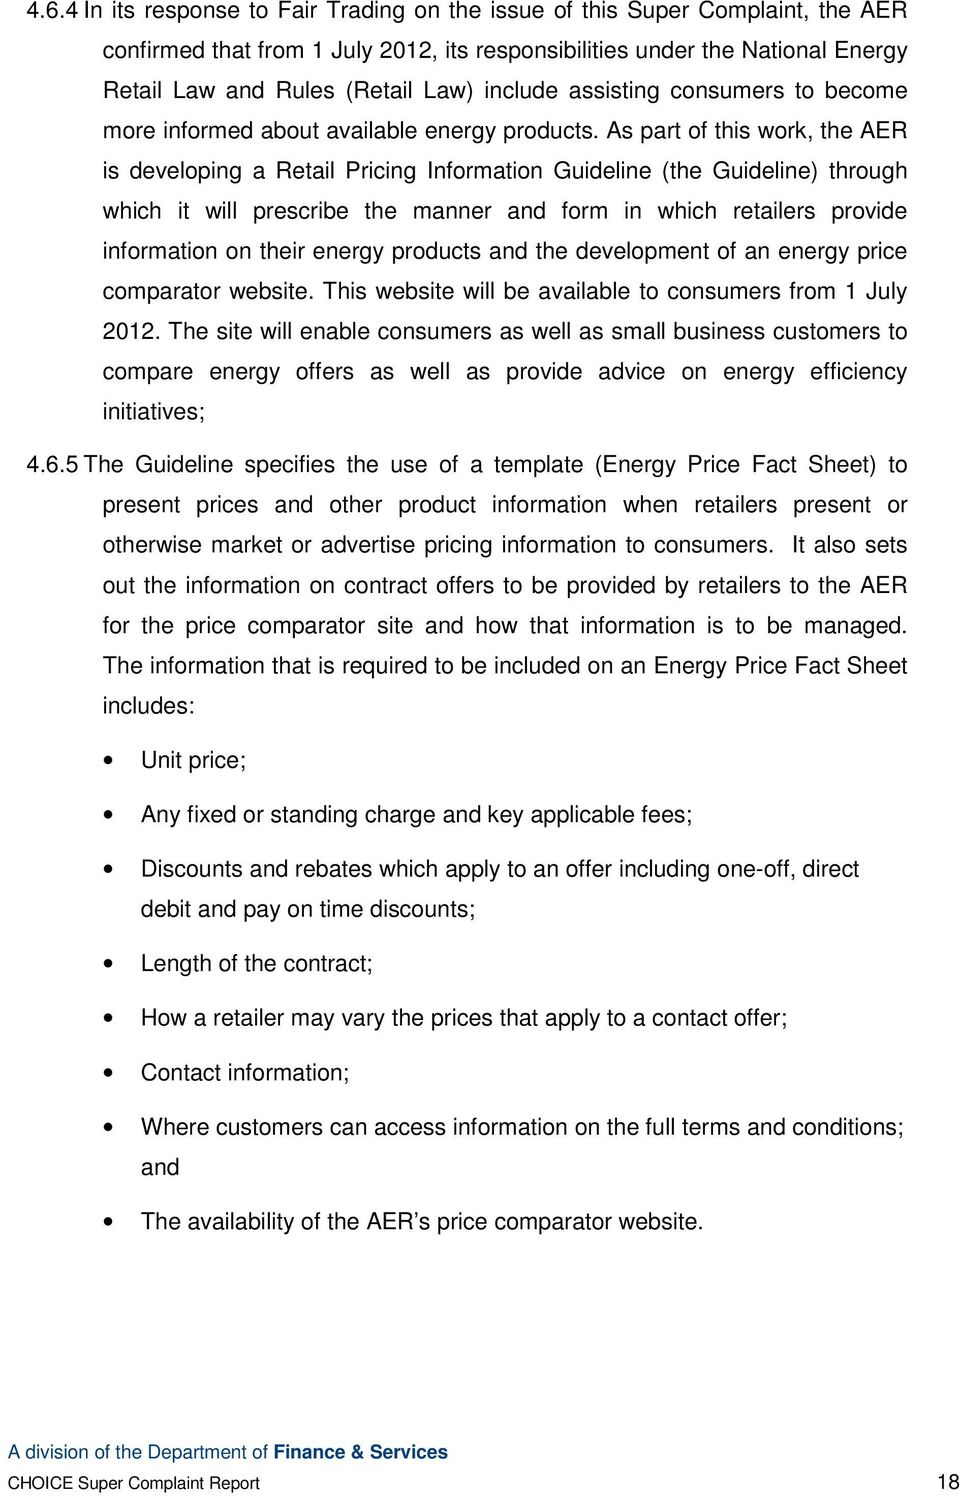 As part of this work, the AER is developing a Retail Pricing Information Guideline (the Guideline) through which it will prescribe the manner and form in which retailers provide information on their